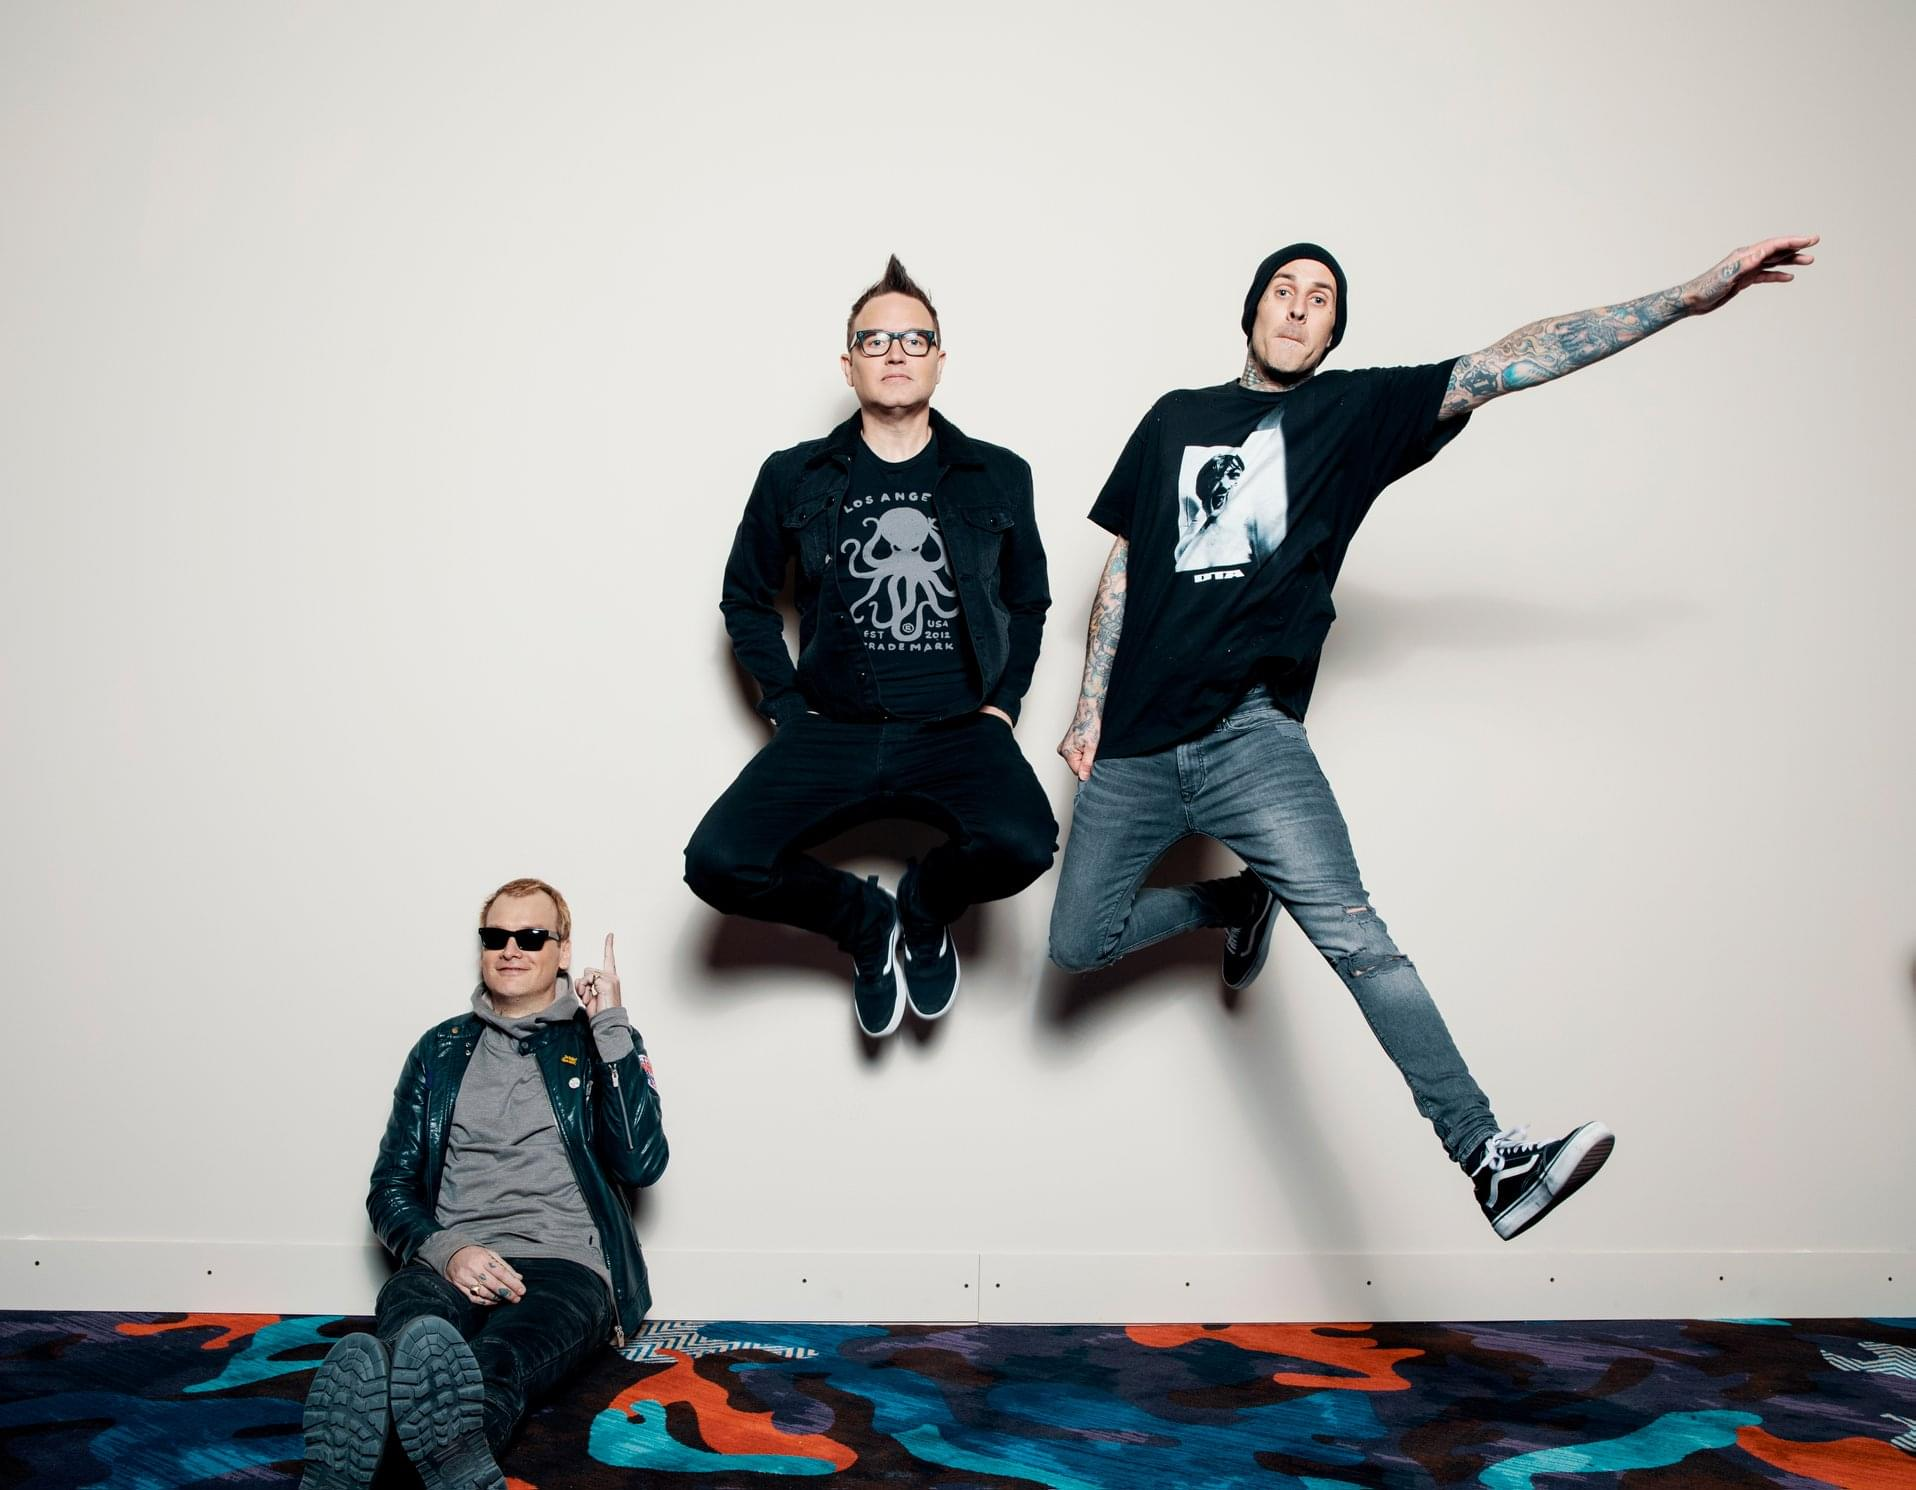 Blink-182 Cancels Saturday's Performance at Surf Ranch Pro in